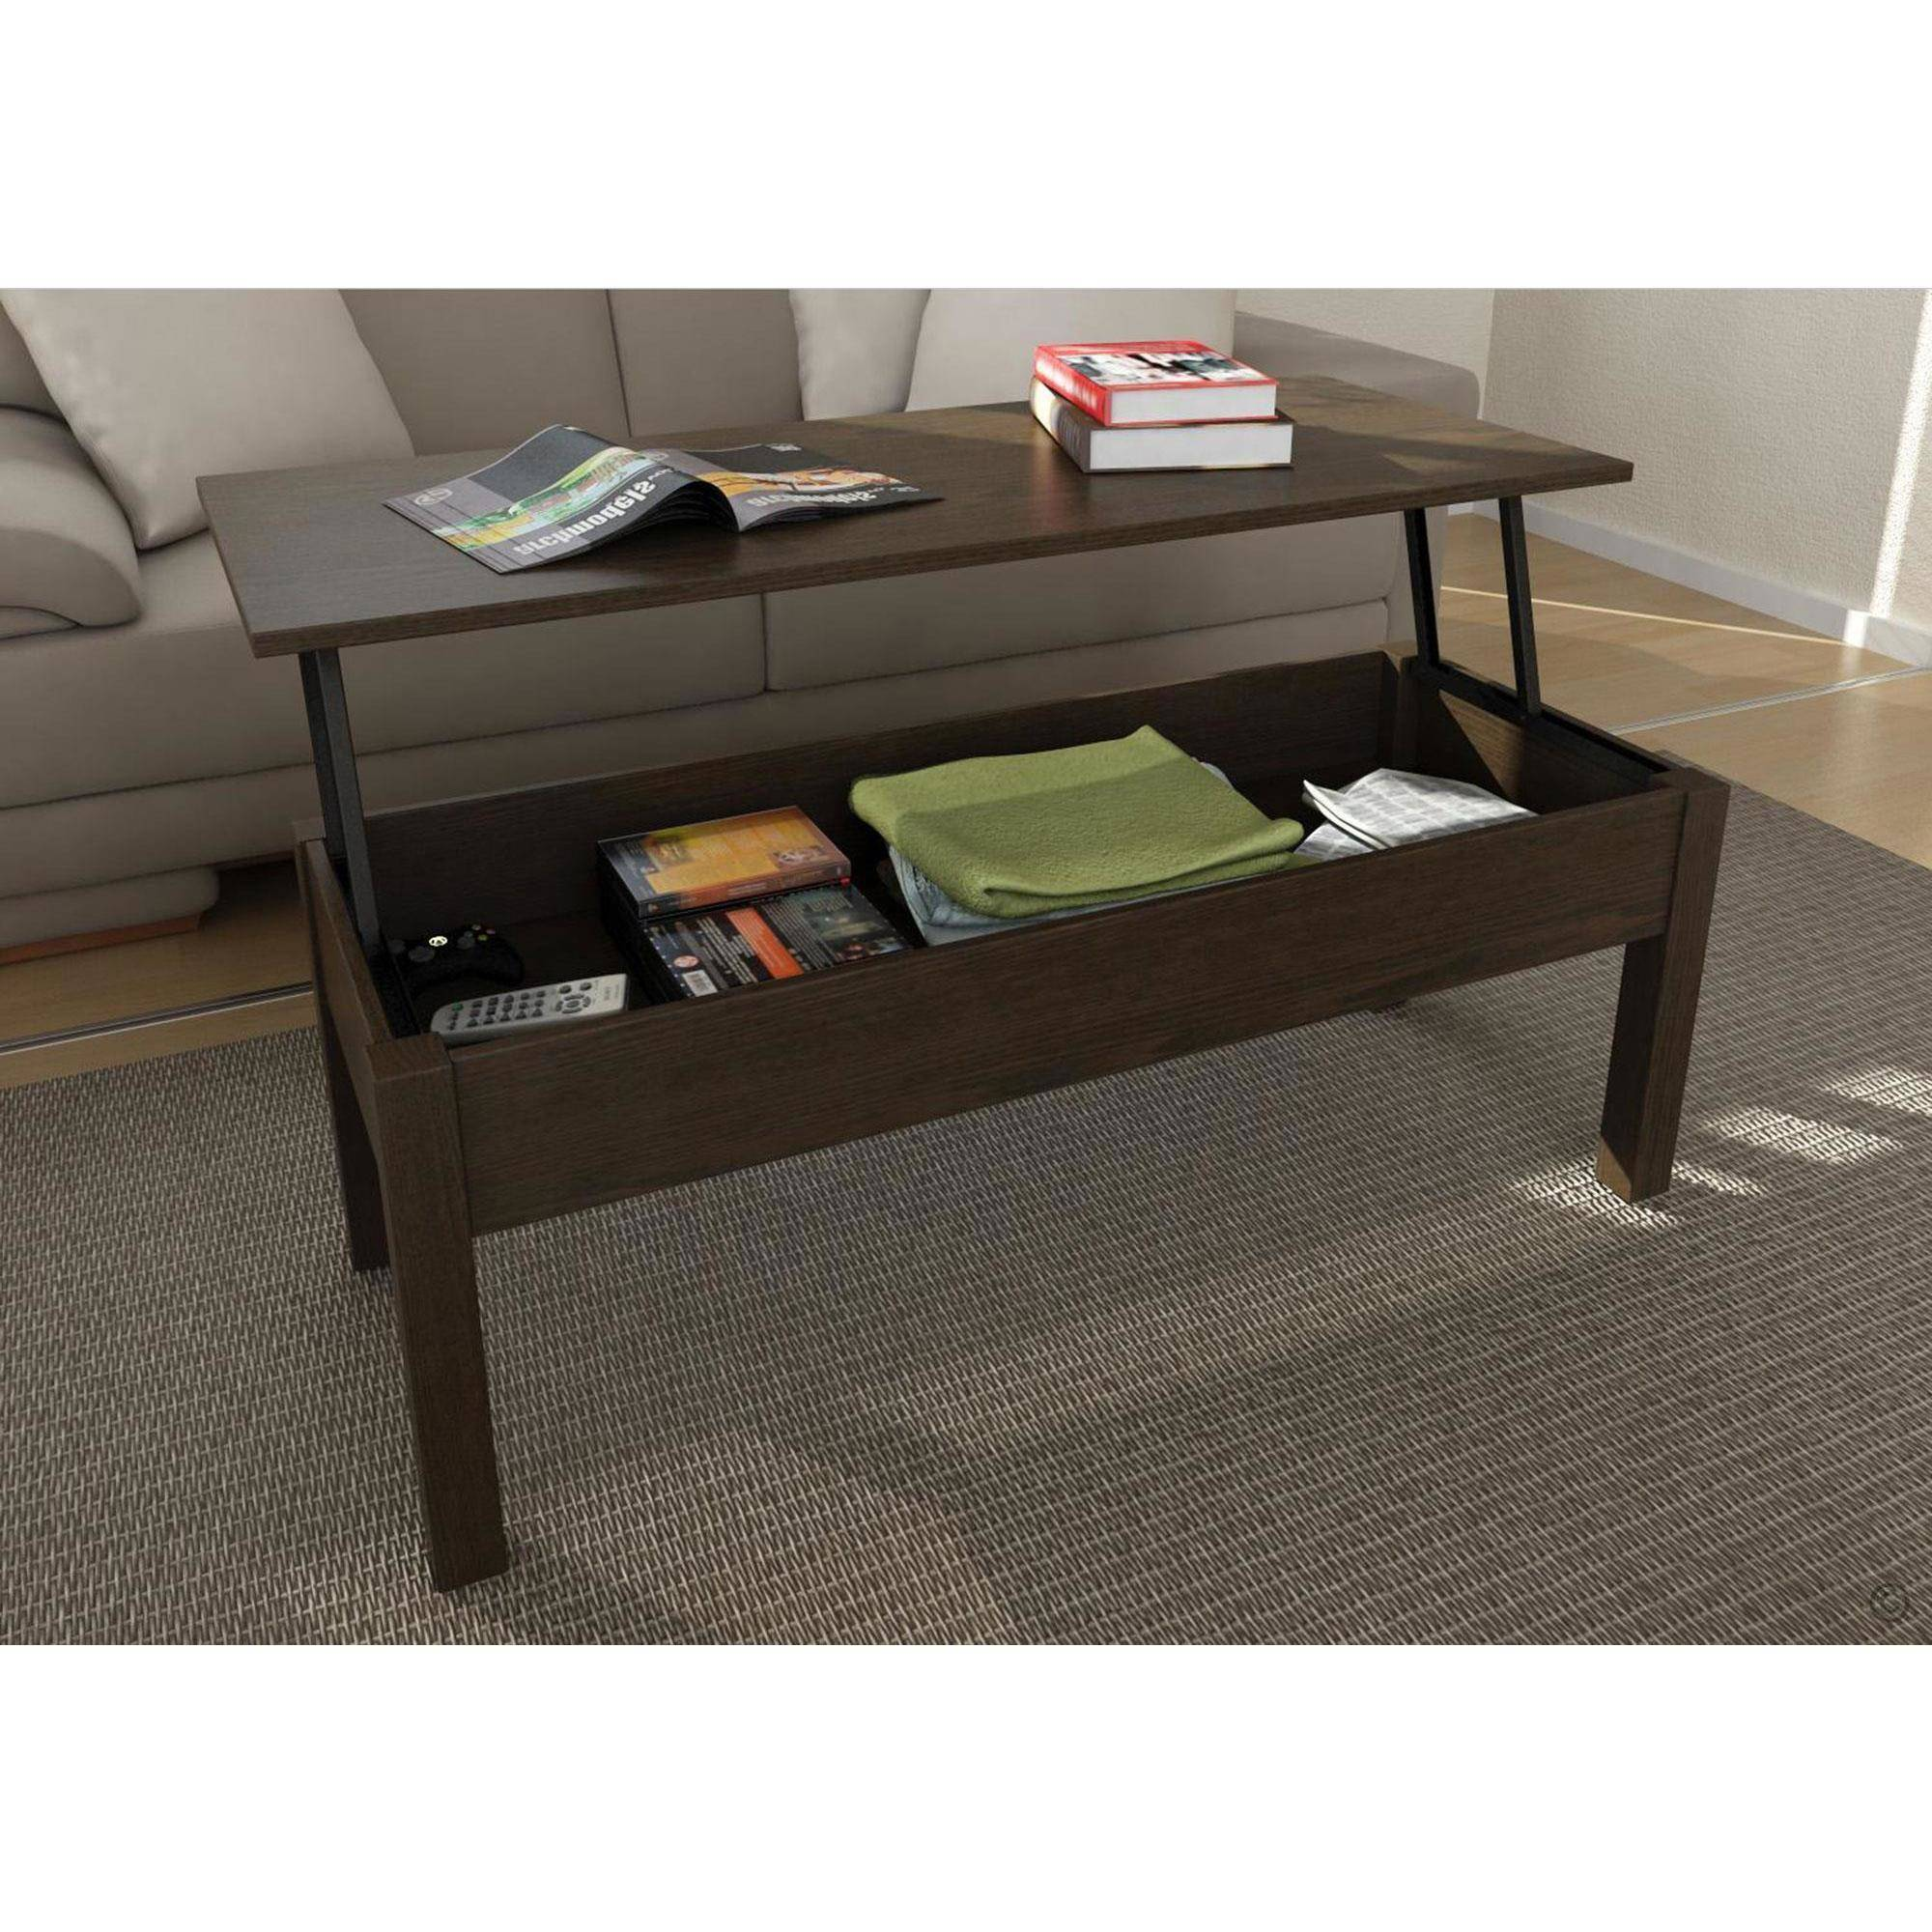 lift top coffee table mainstays lift-top coffee table, multiple colors TSECQBF